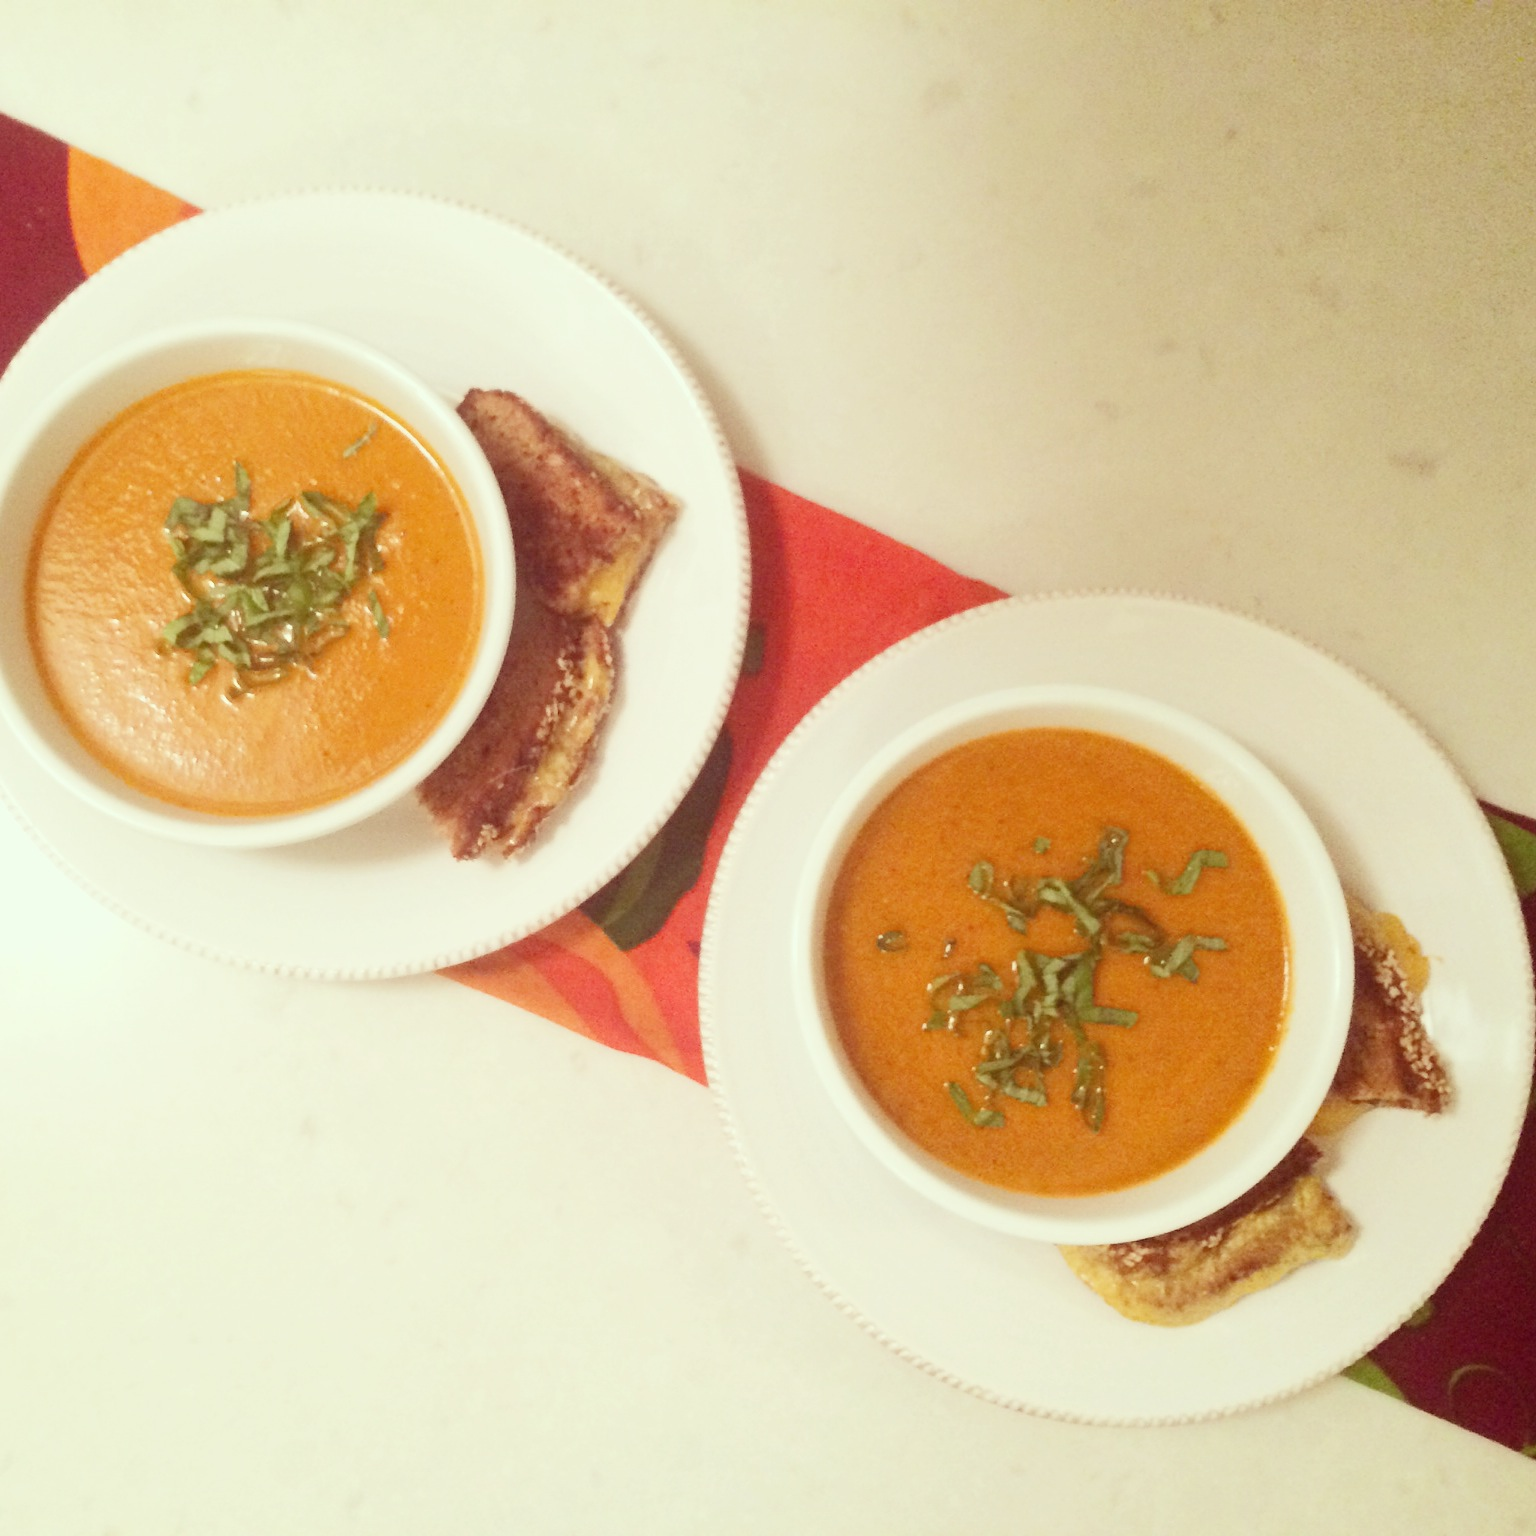 barefoot contessa roasted tomato basil soup | blueberries & basil